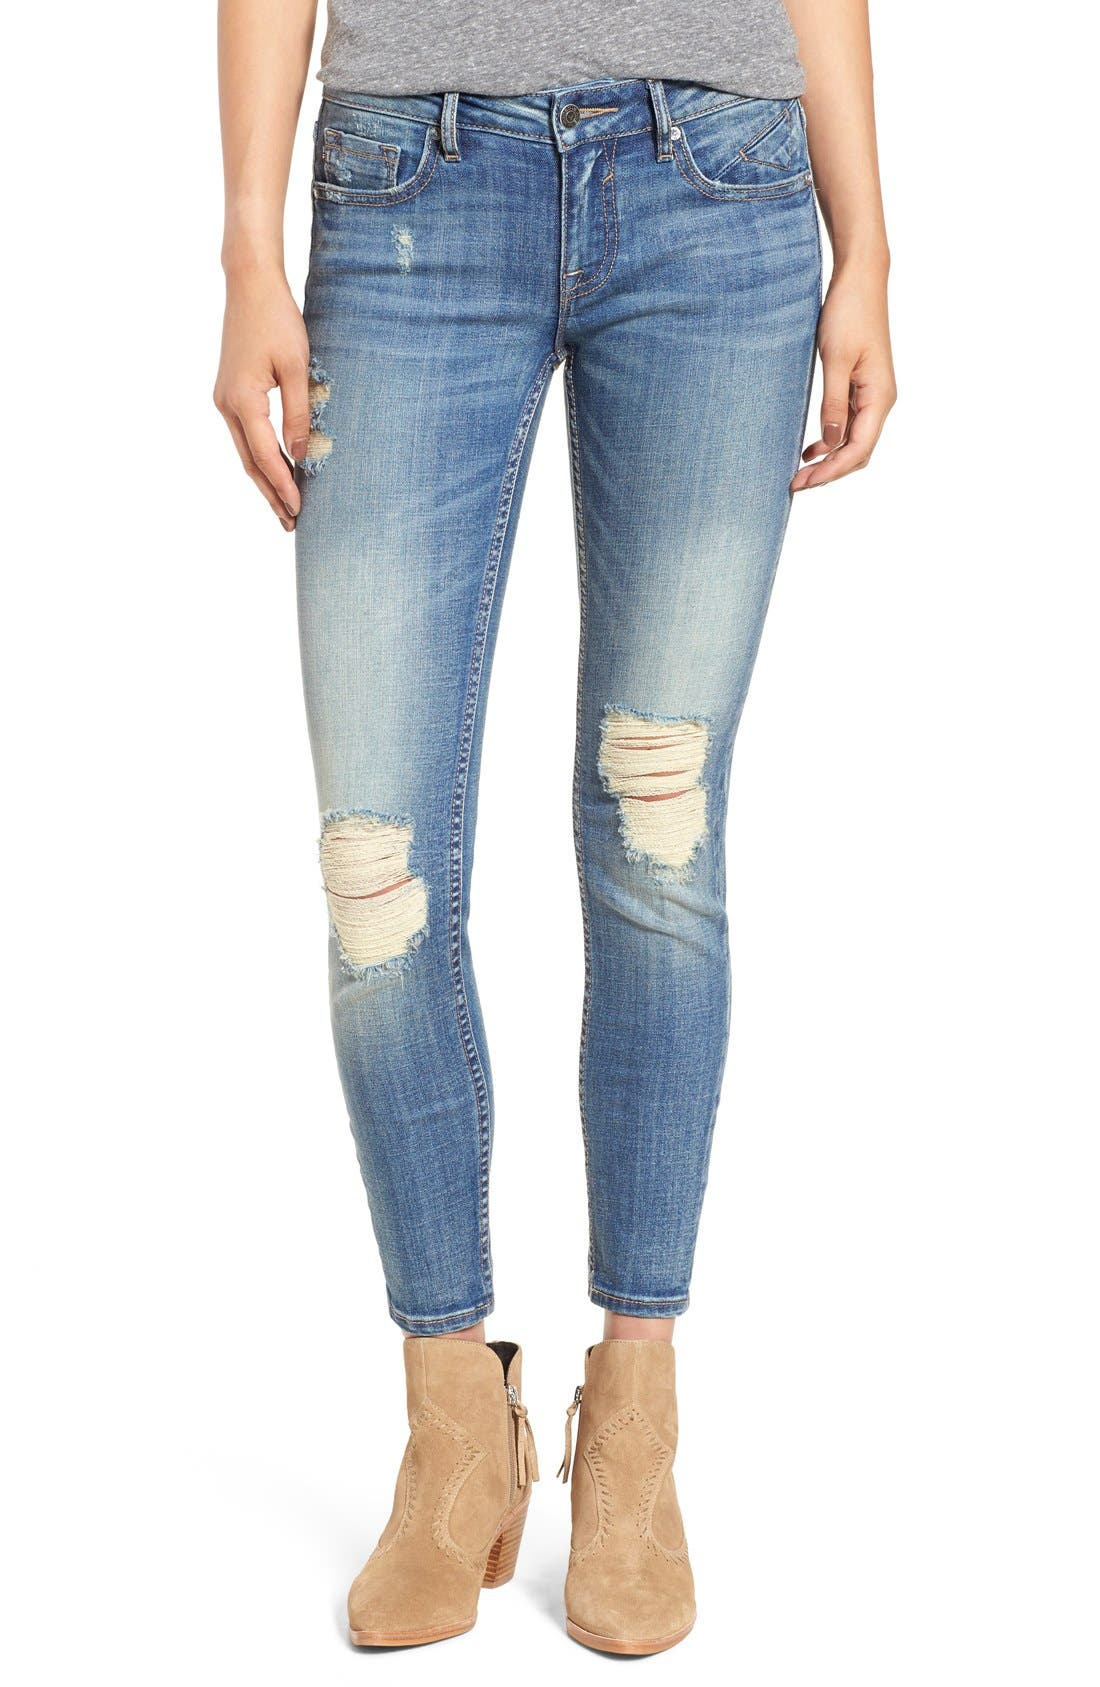 VIGOSS, 'Chelsea' Destroyed Ankle Skinny Jeans, Main thumbnail 1, color, 400